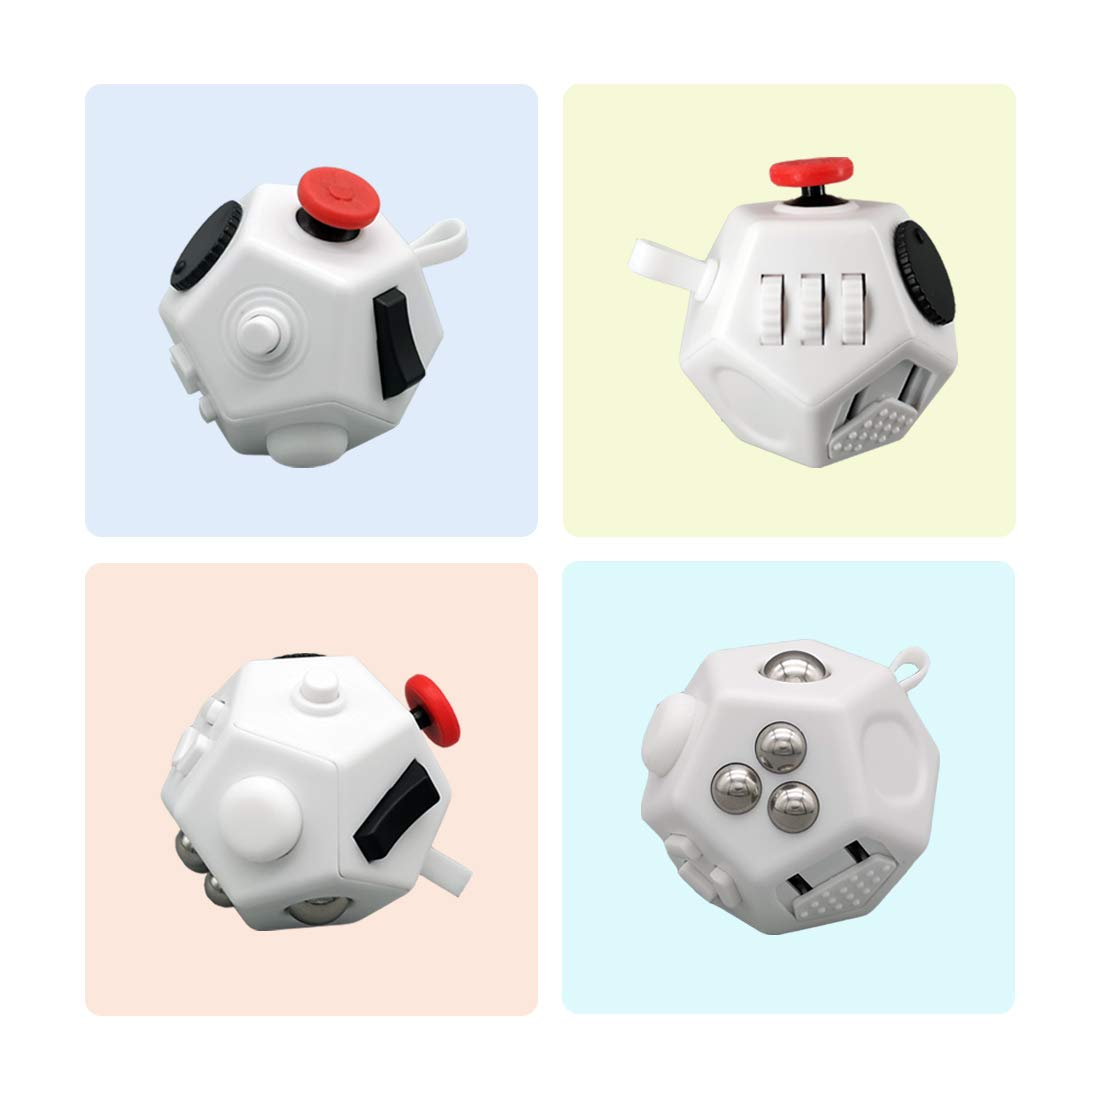 Orisignall Fidget Dodecagon Cube Toys,1 Fidgeting Toys for Sensory Kids and Adults Relieves Stress and Anxiety Finger Attention with ADD EDC ADHD White